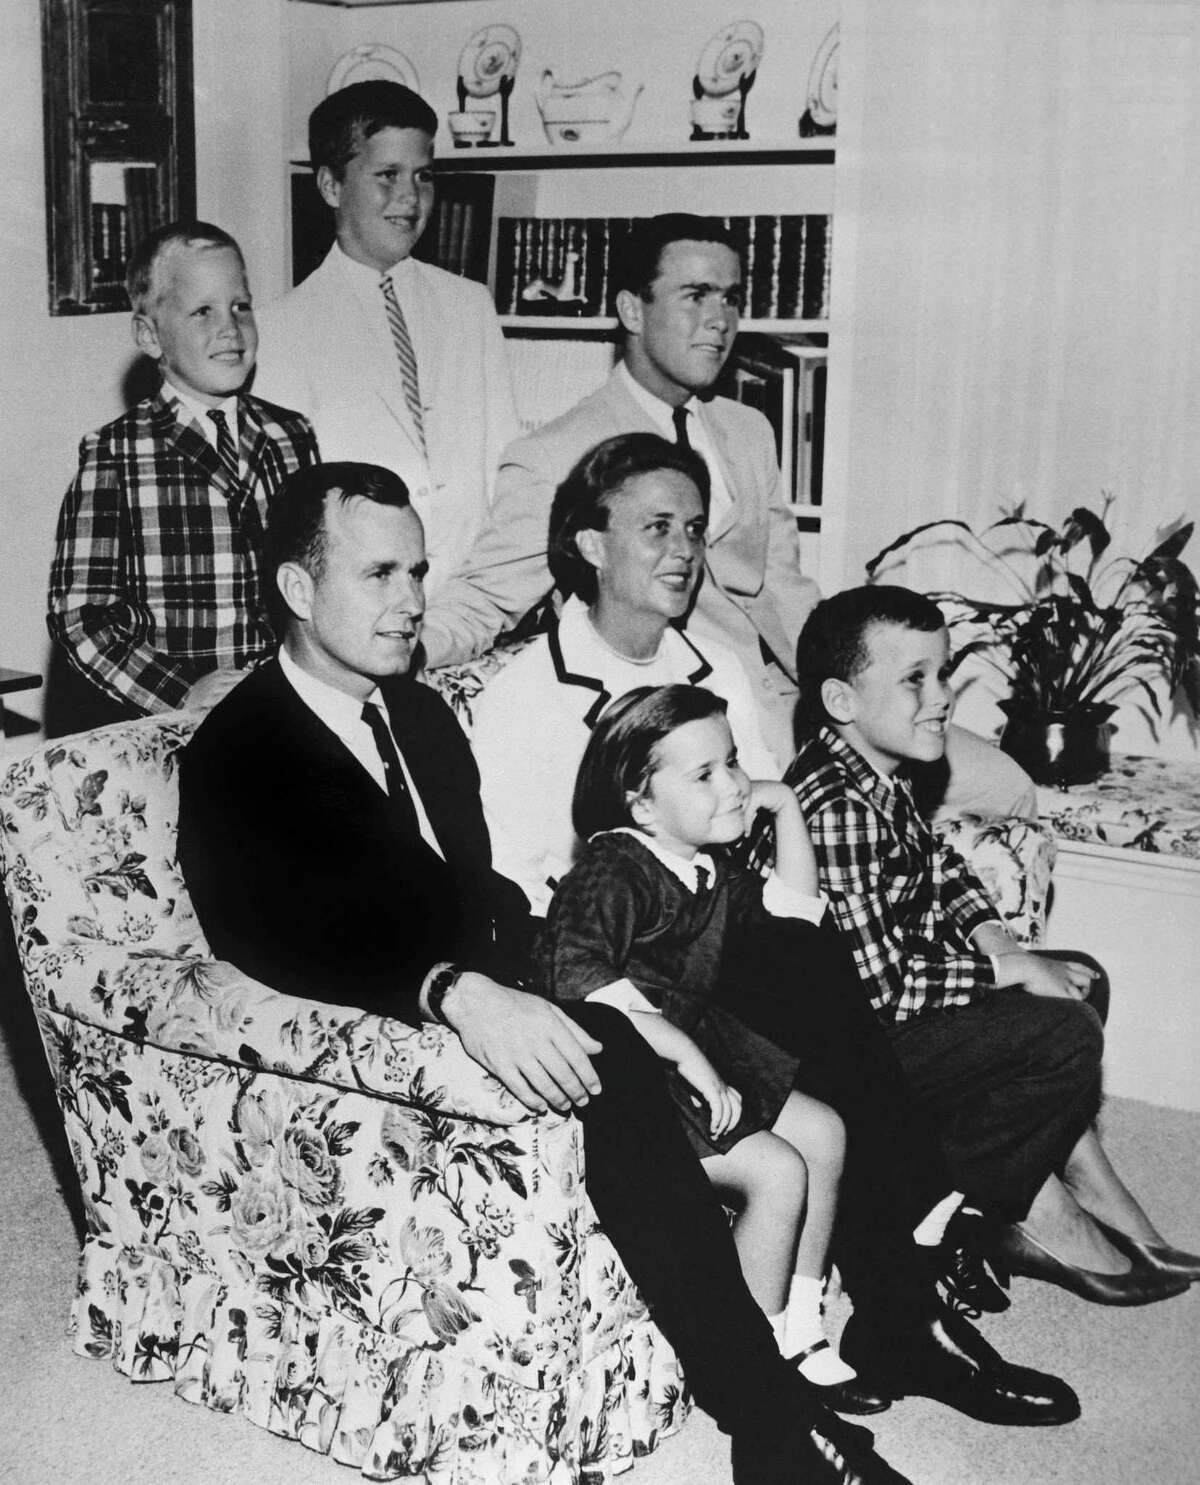 George H.W. Bush sits on couch with his wife Barbara and their children in 1964. George W. Bush sits at right behind his mother. Behind couch are Neil and Jeb Bush. Sitting with parents are Dorothy and Marvin Bush.